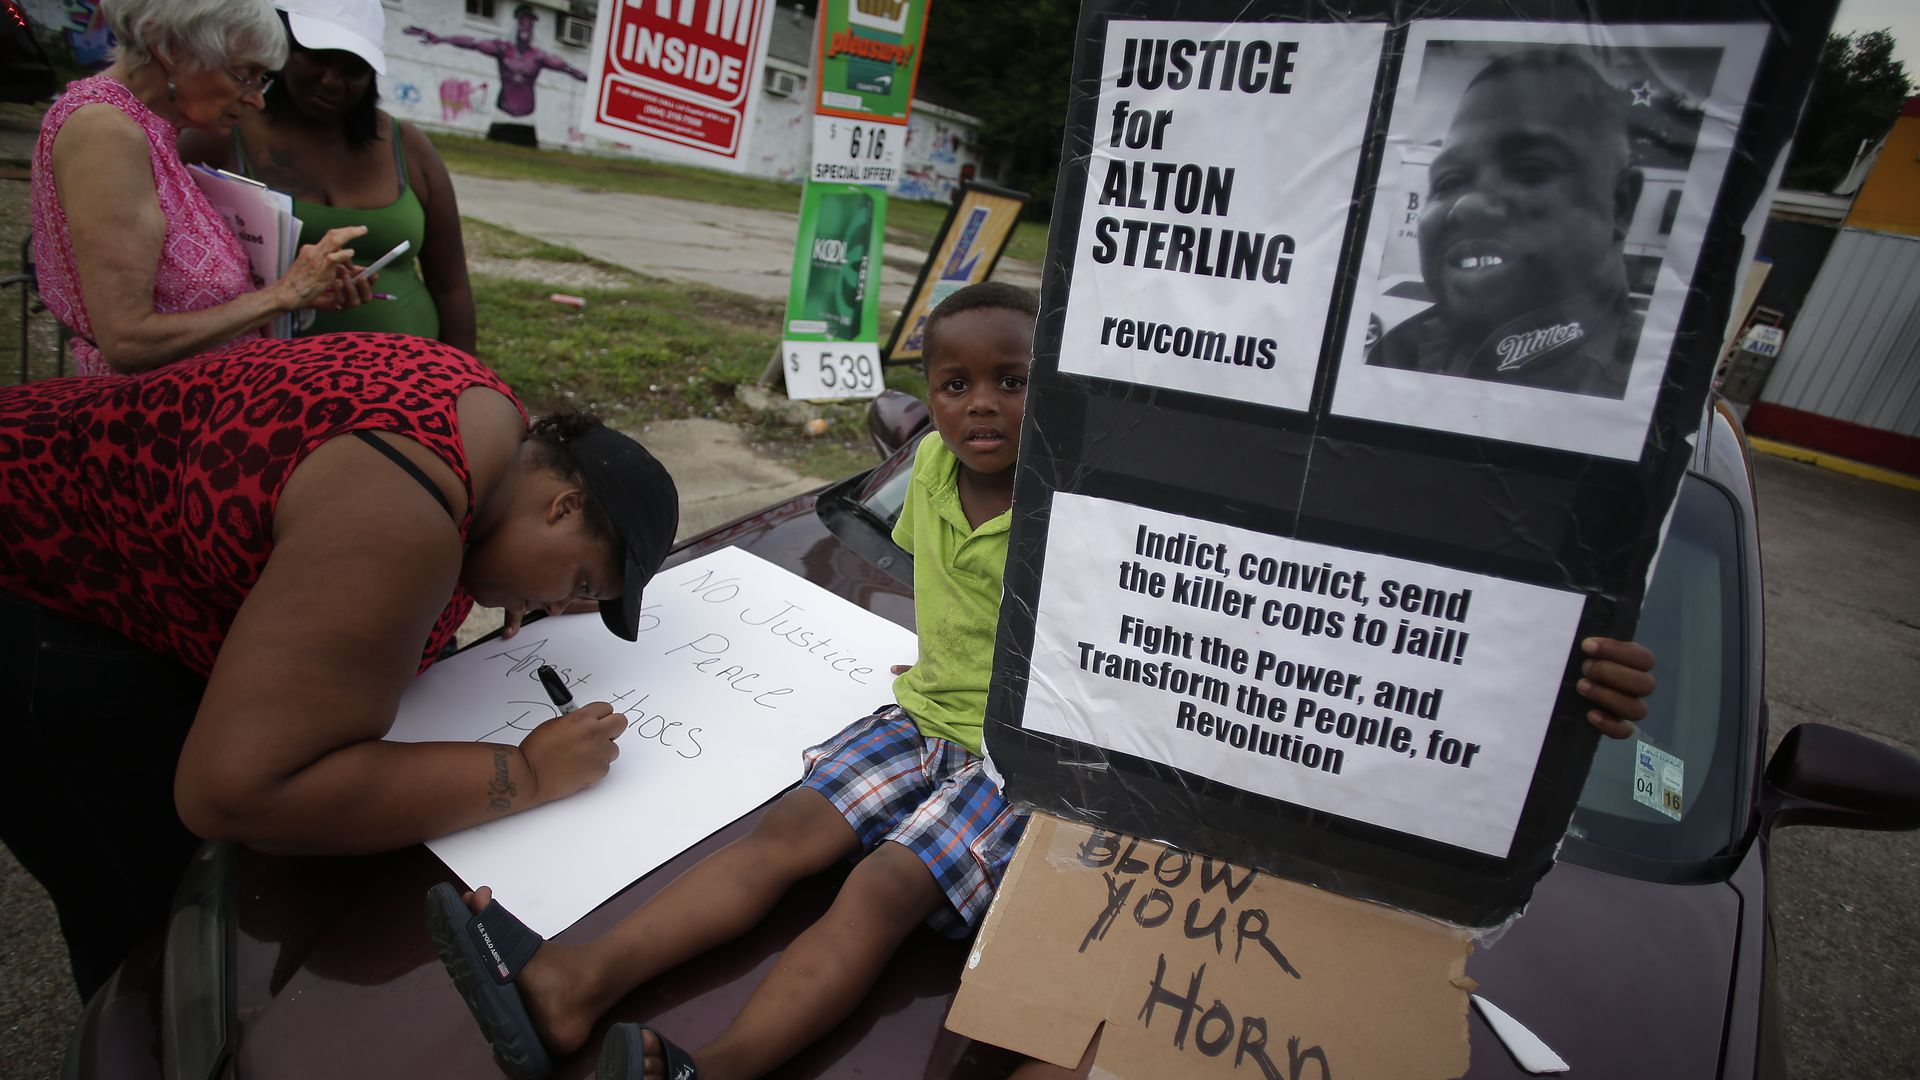 Demonstrators protest the fatal police shooting of Alton Sterling July 21, 2016.